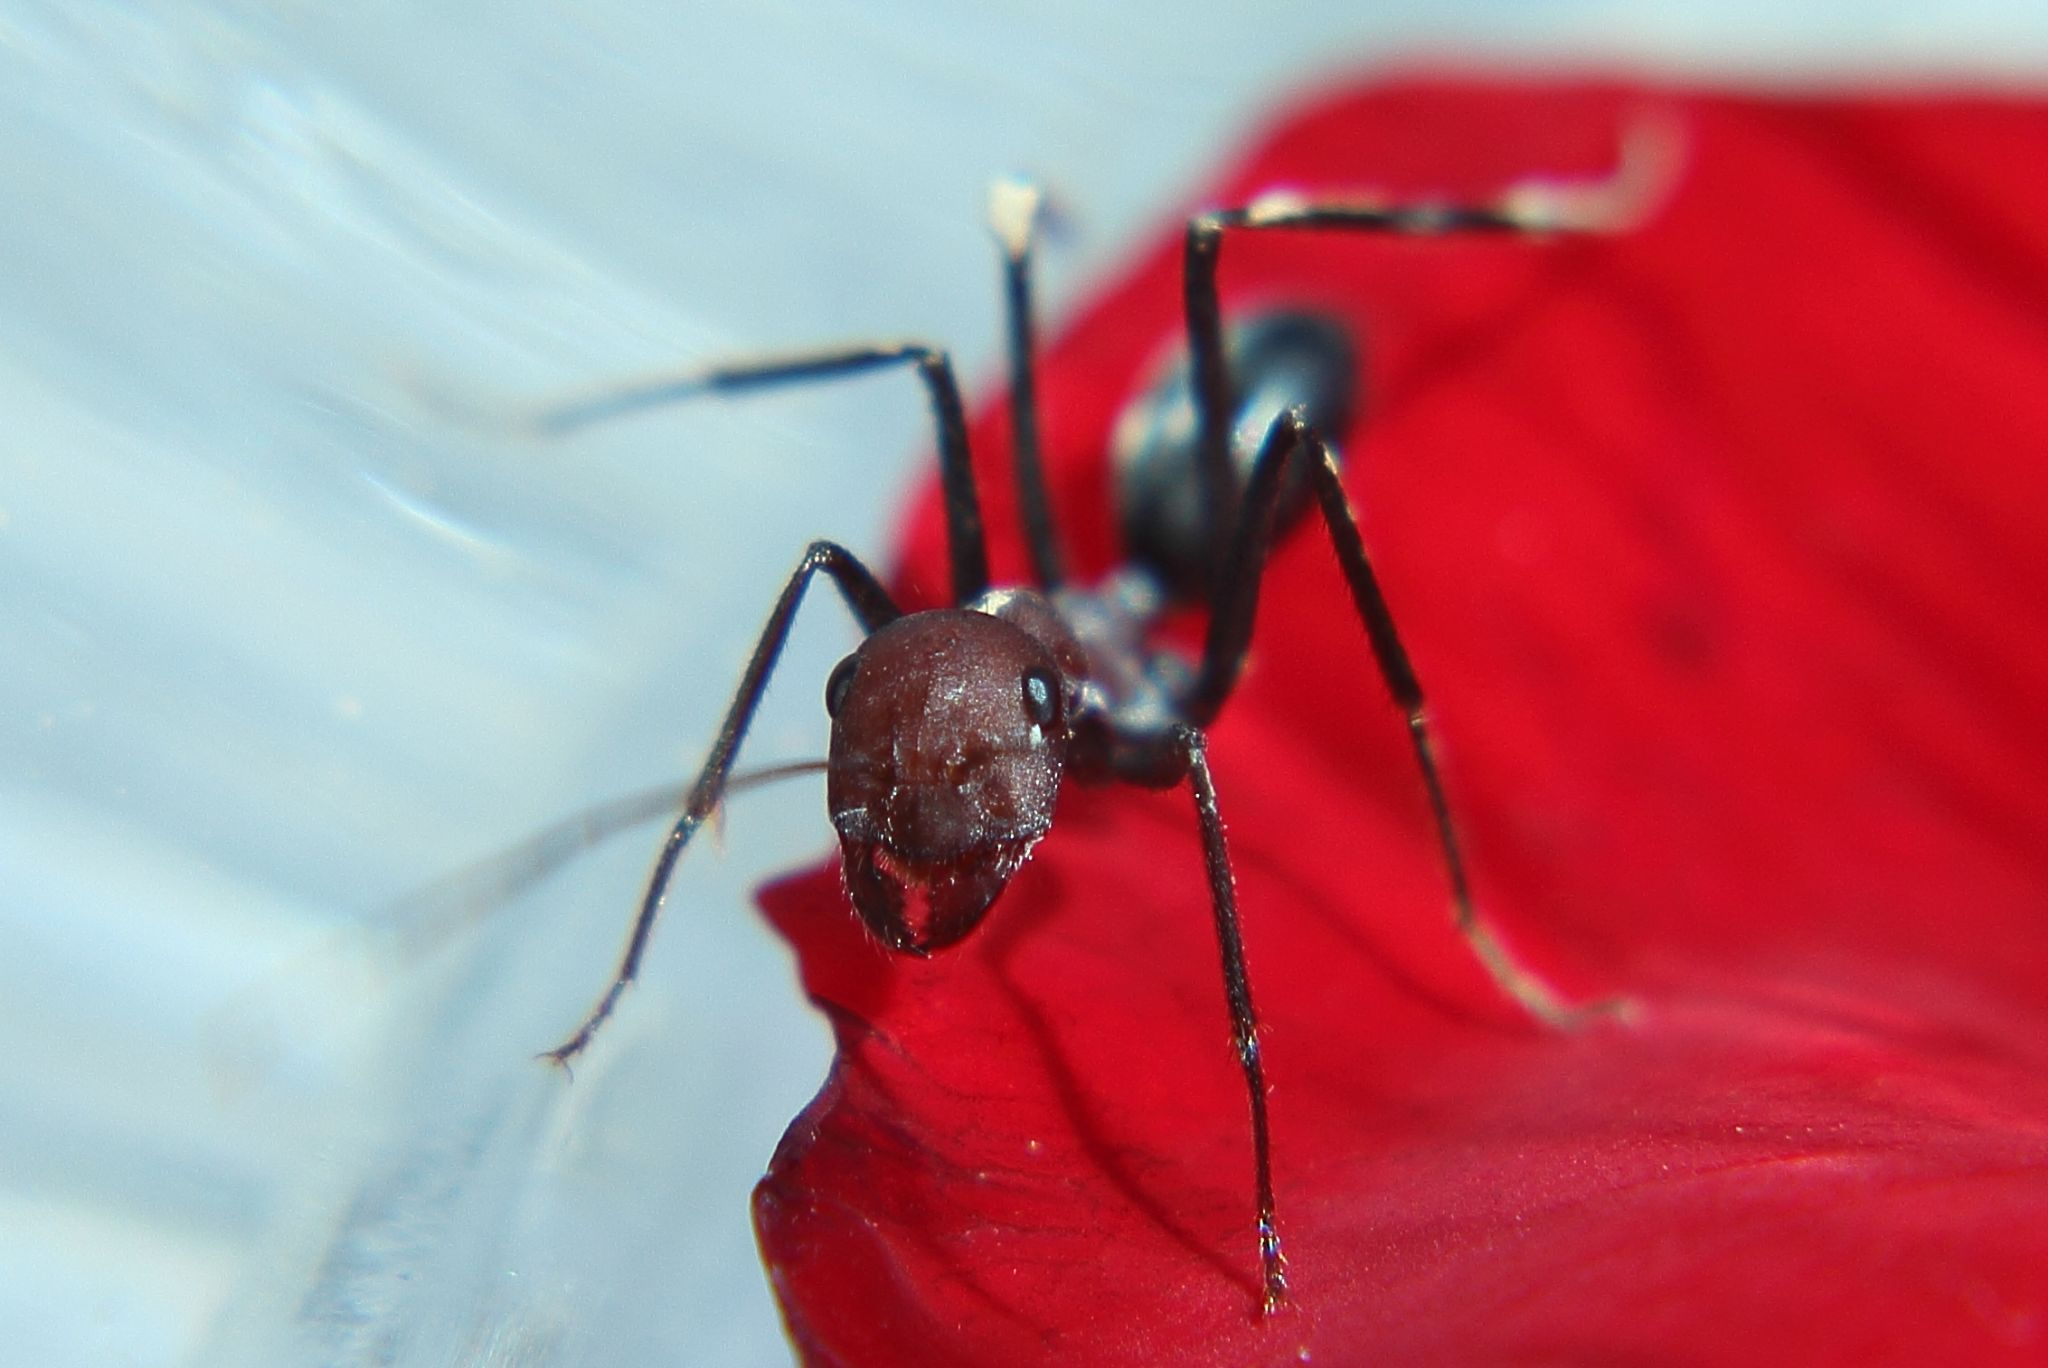 Ant in the red carpet by Jawid Wahidi